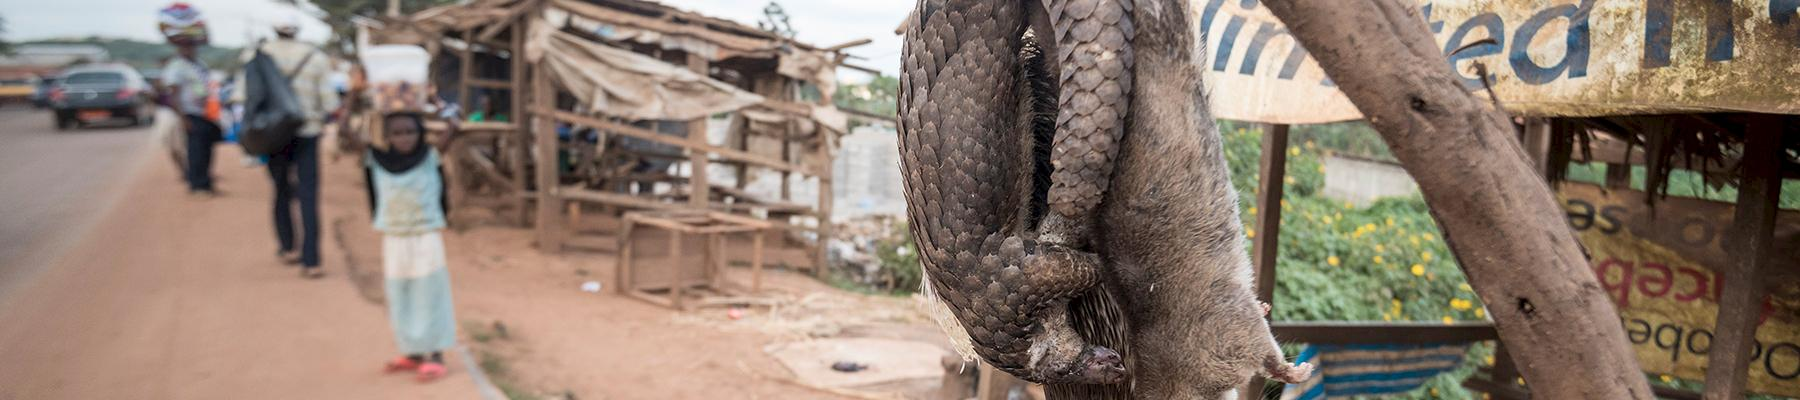 Bushmeat displayed for sale in Cameroon © A. Walmsley / TRAFFIC